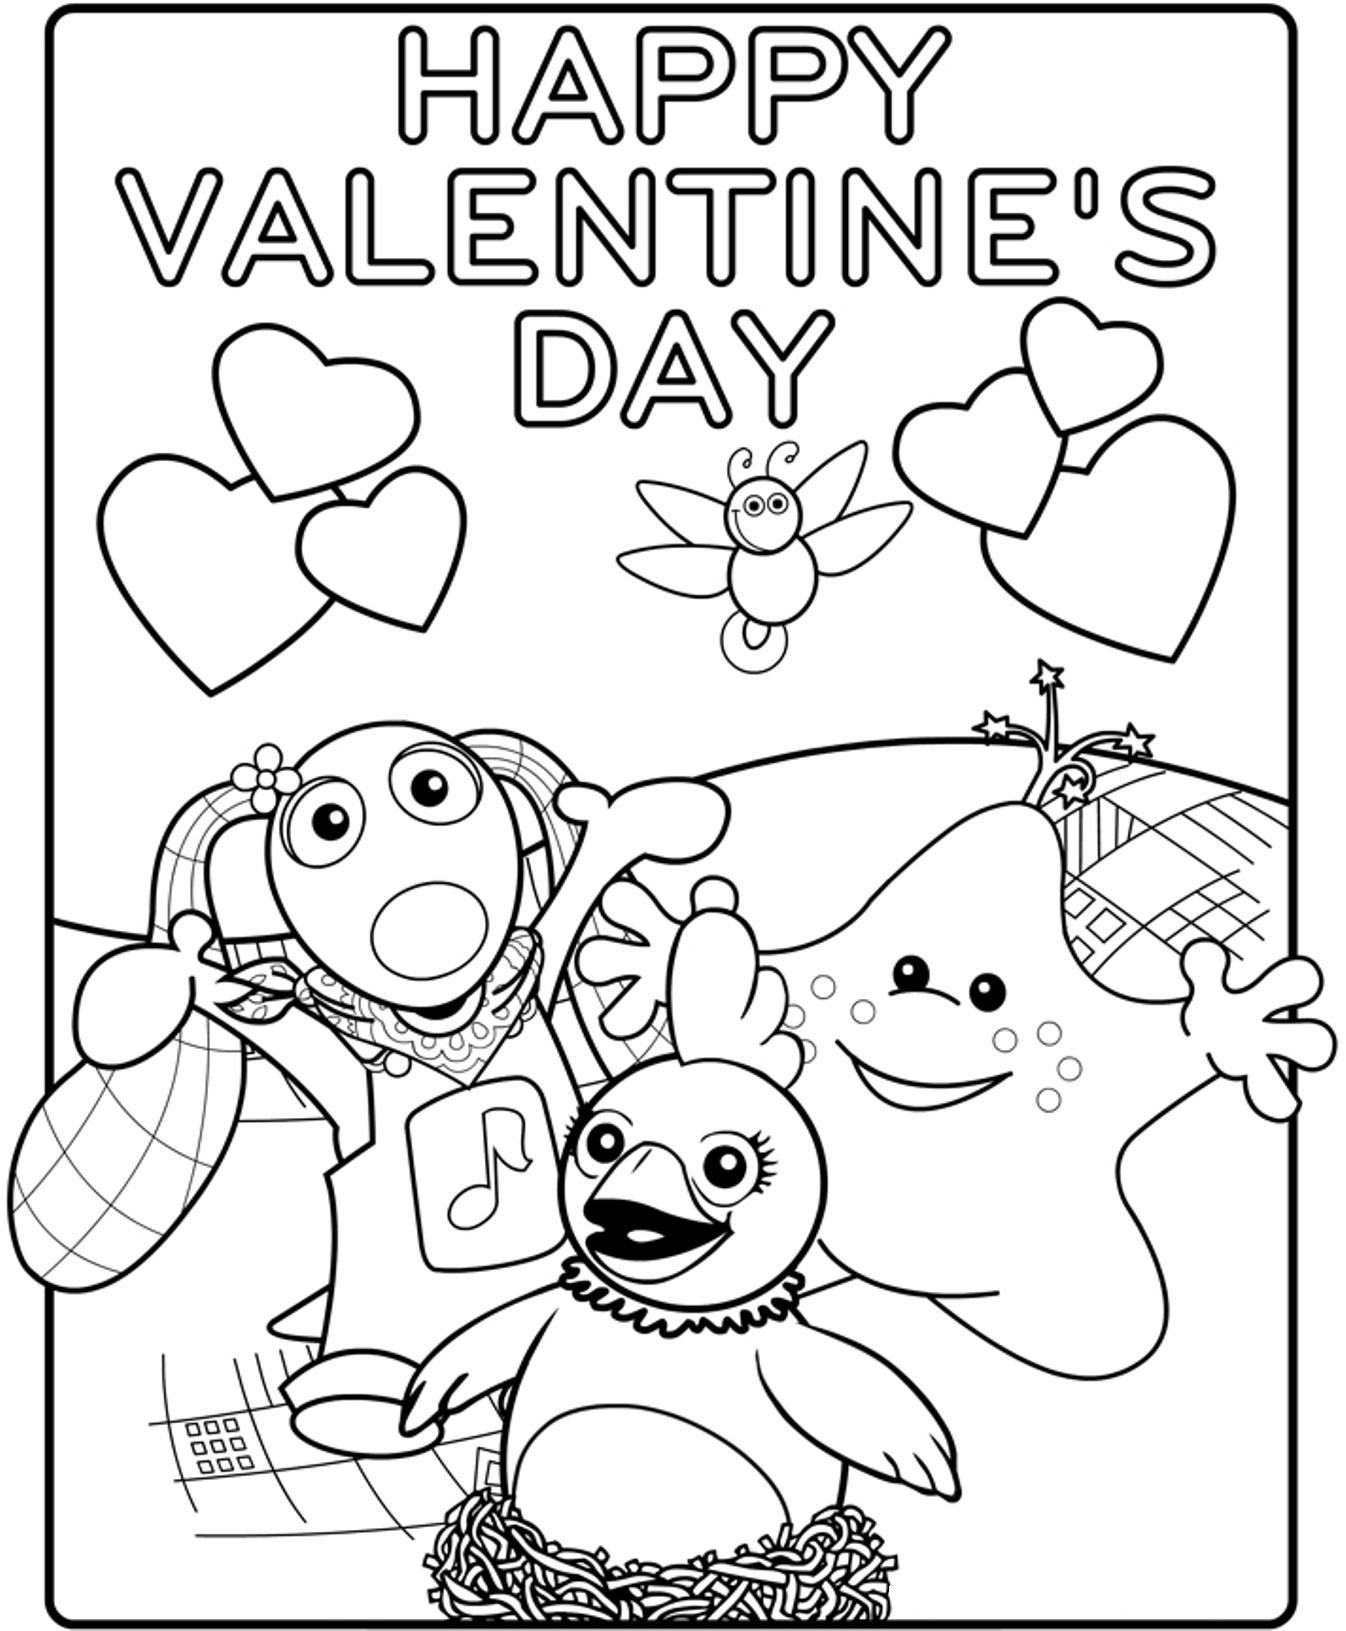 valentines day color pages valentine39s day coloring pages gtgt disney coloring pages valentines day color pages